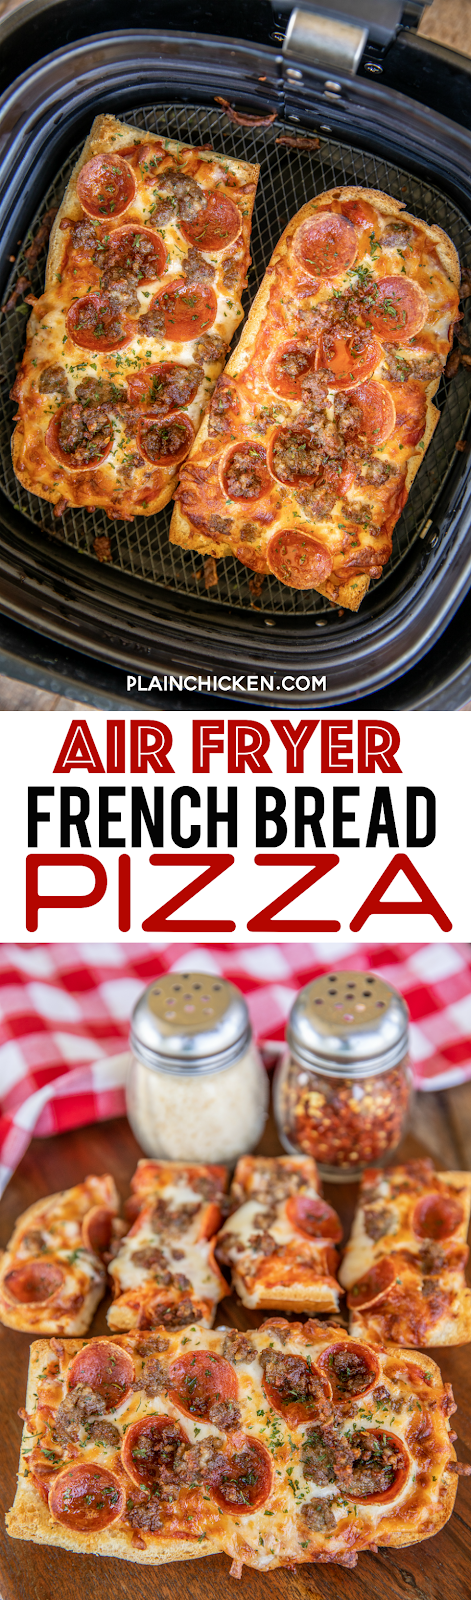 collage of 2 photos of french bread pizza